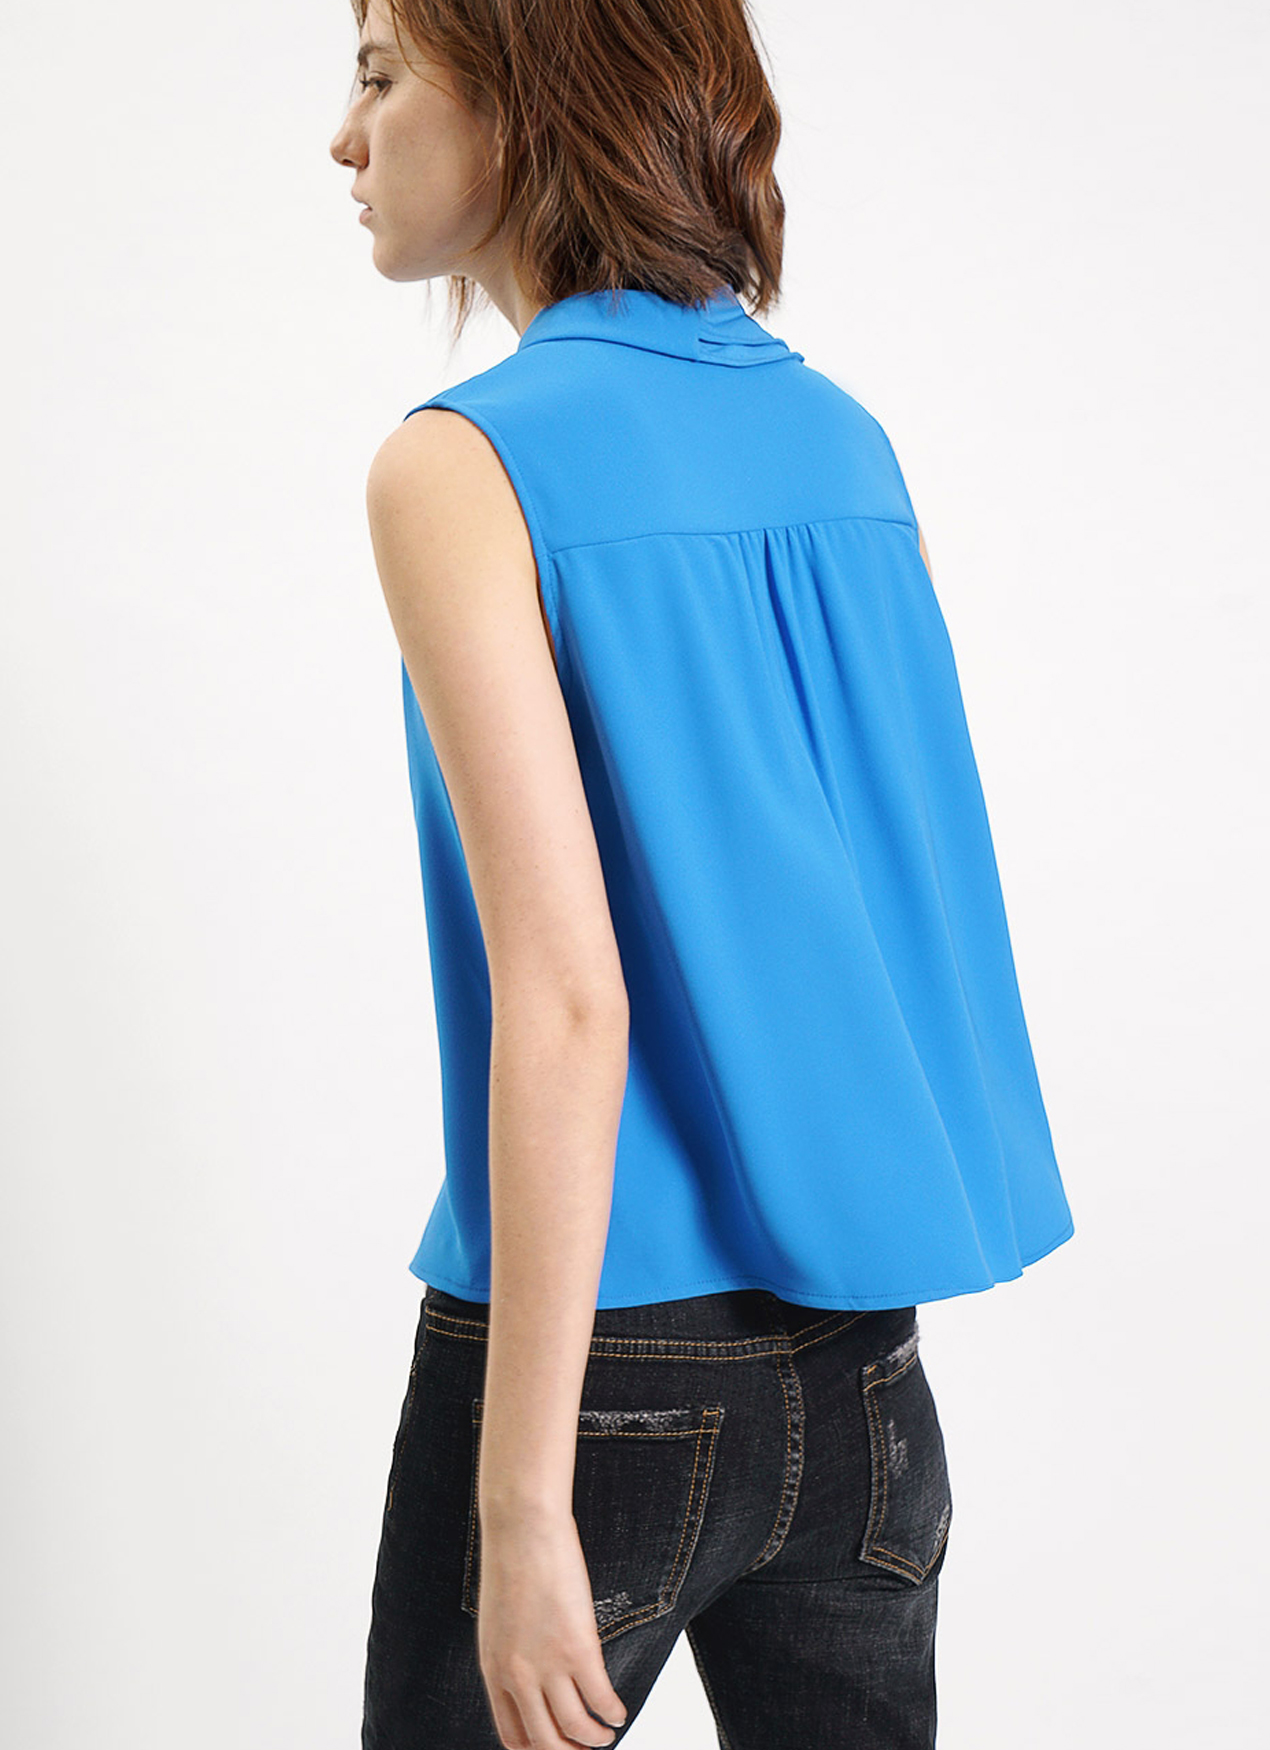 Saturday Club Blue Ruffled Scarf Neck Crepe Top